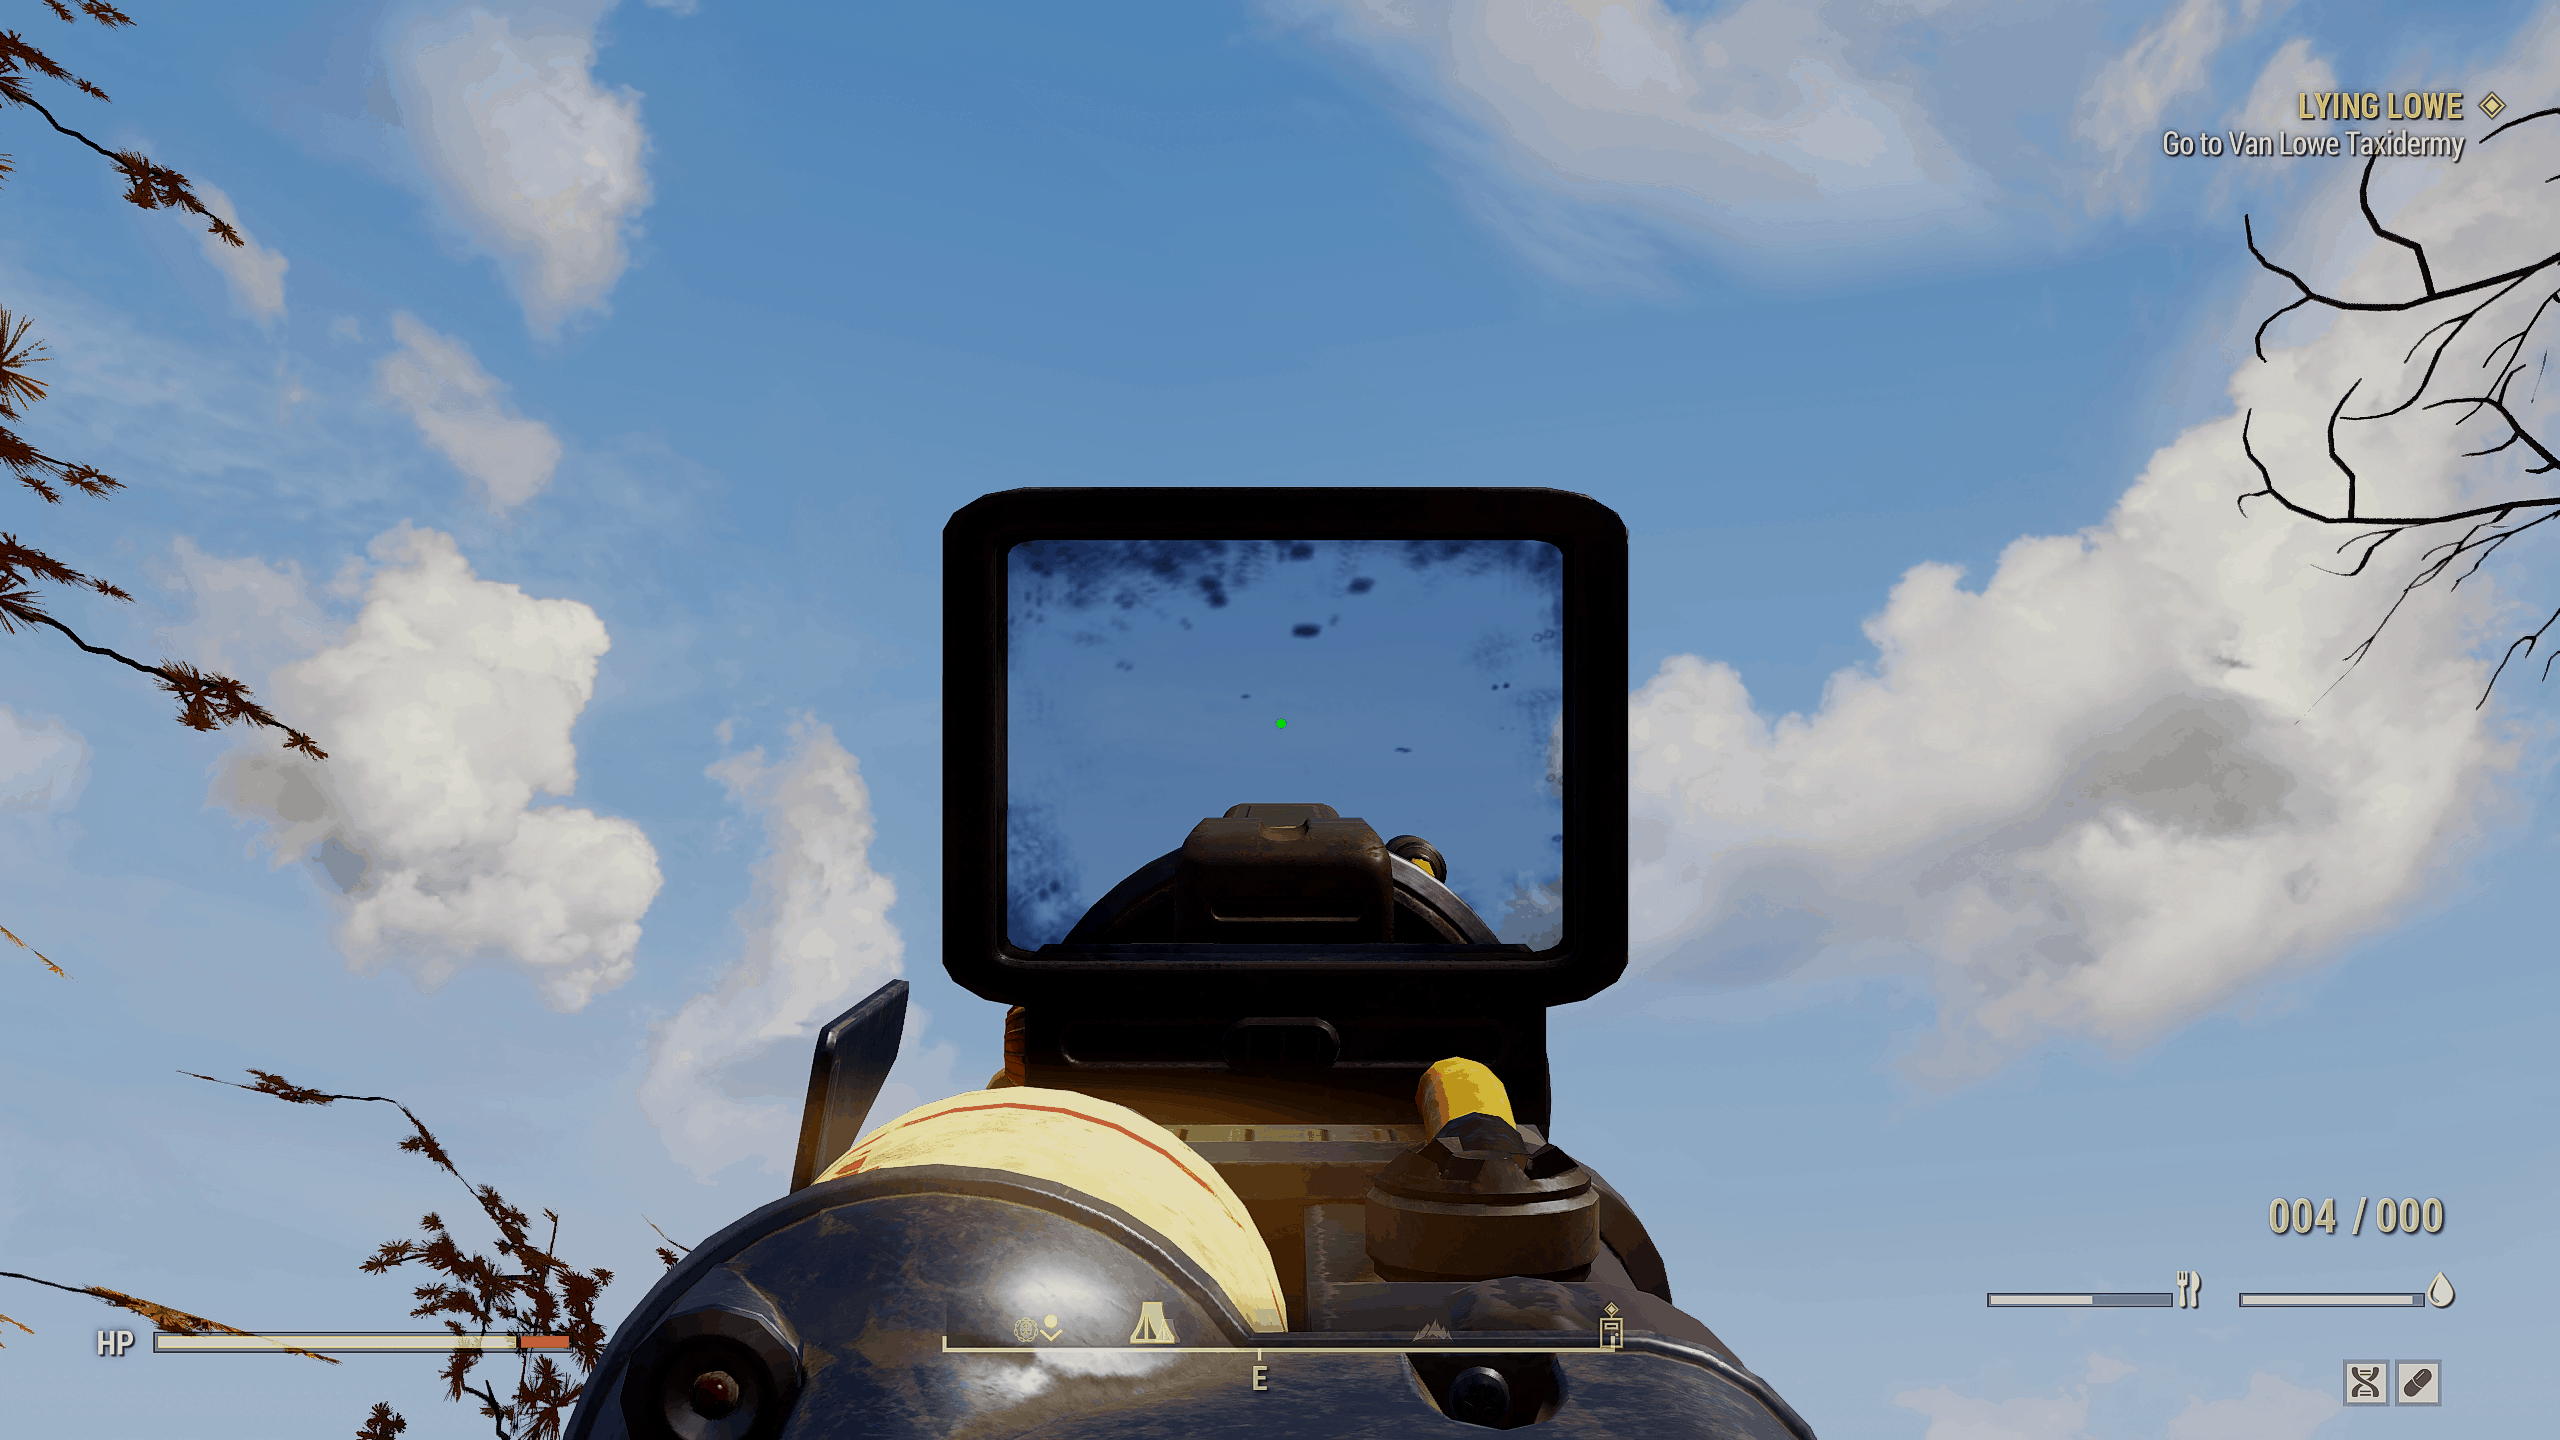 Tactical Reflex Sights Laser And Plasma Fallout 76 Mod Download